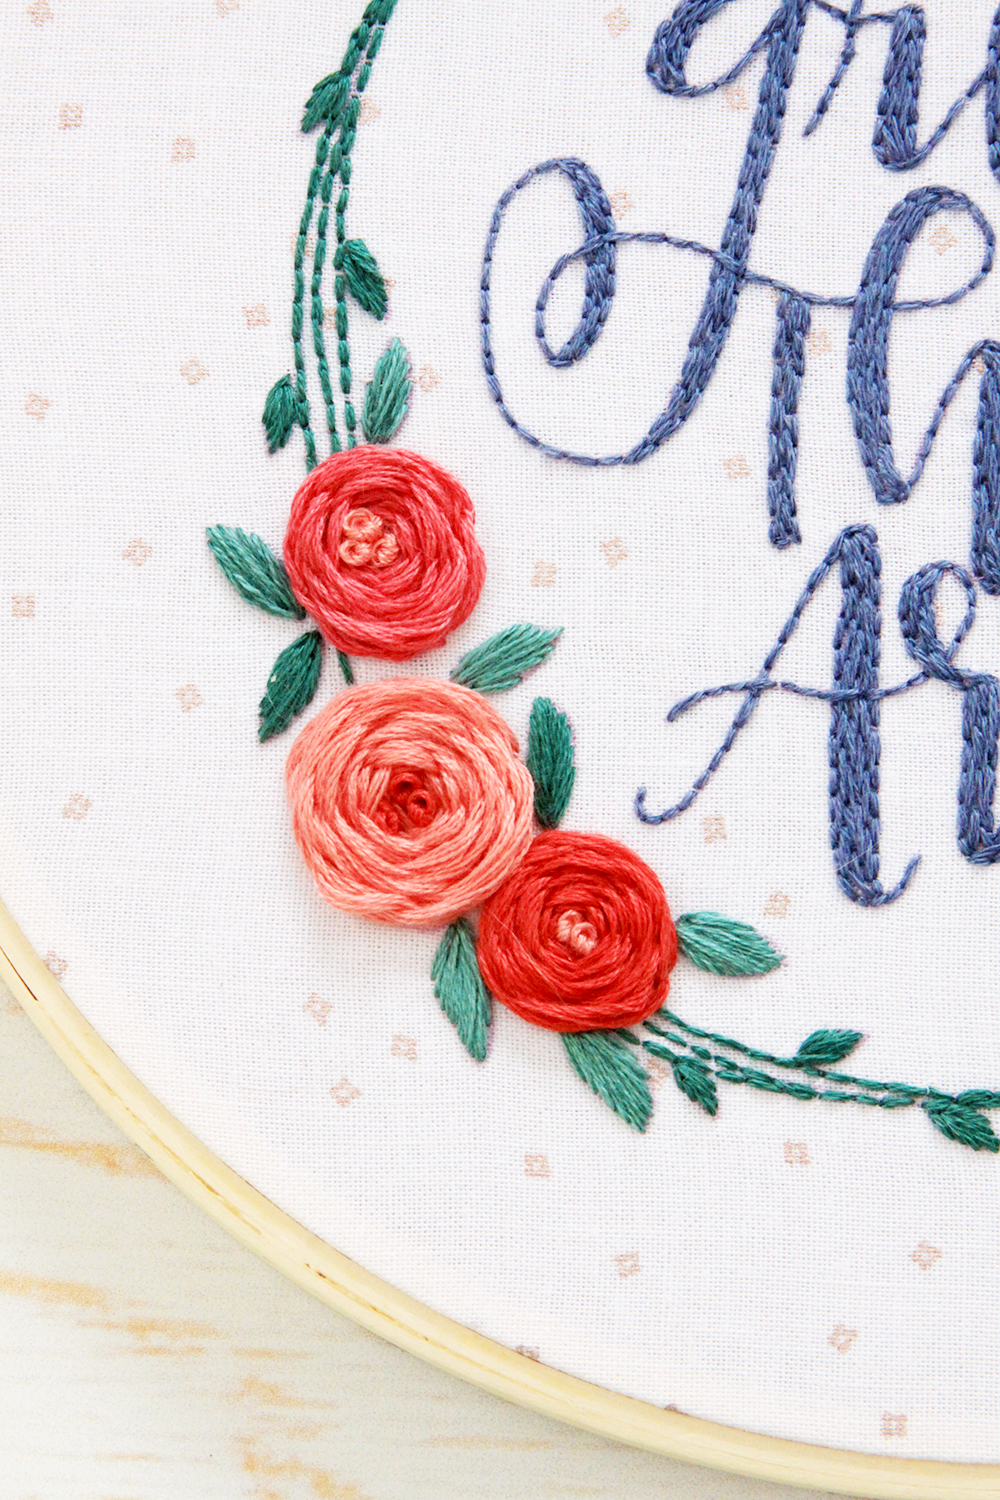 Woven Wheel Embroidered Roses